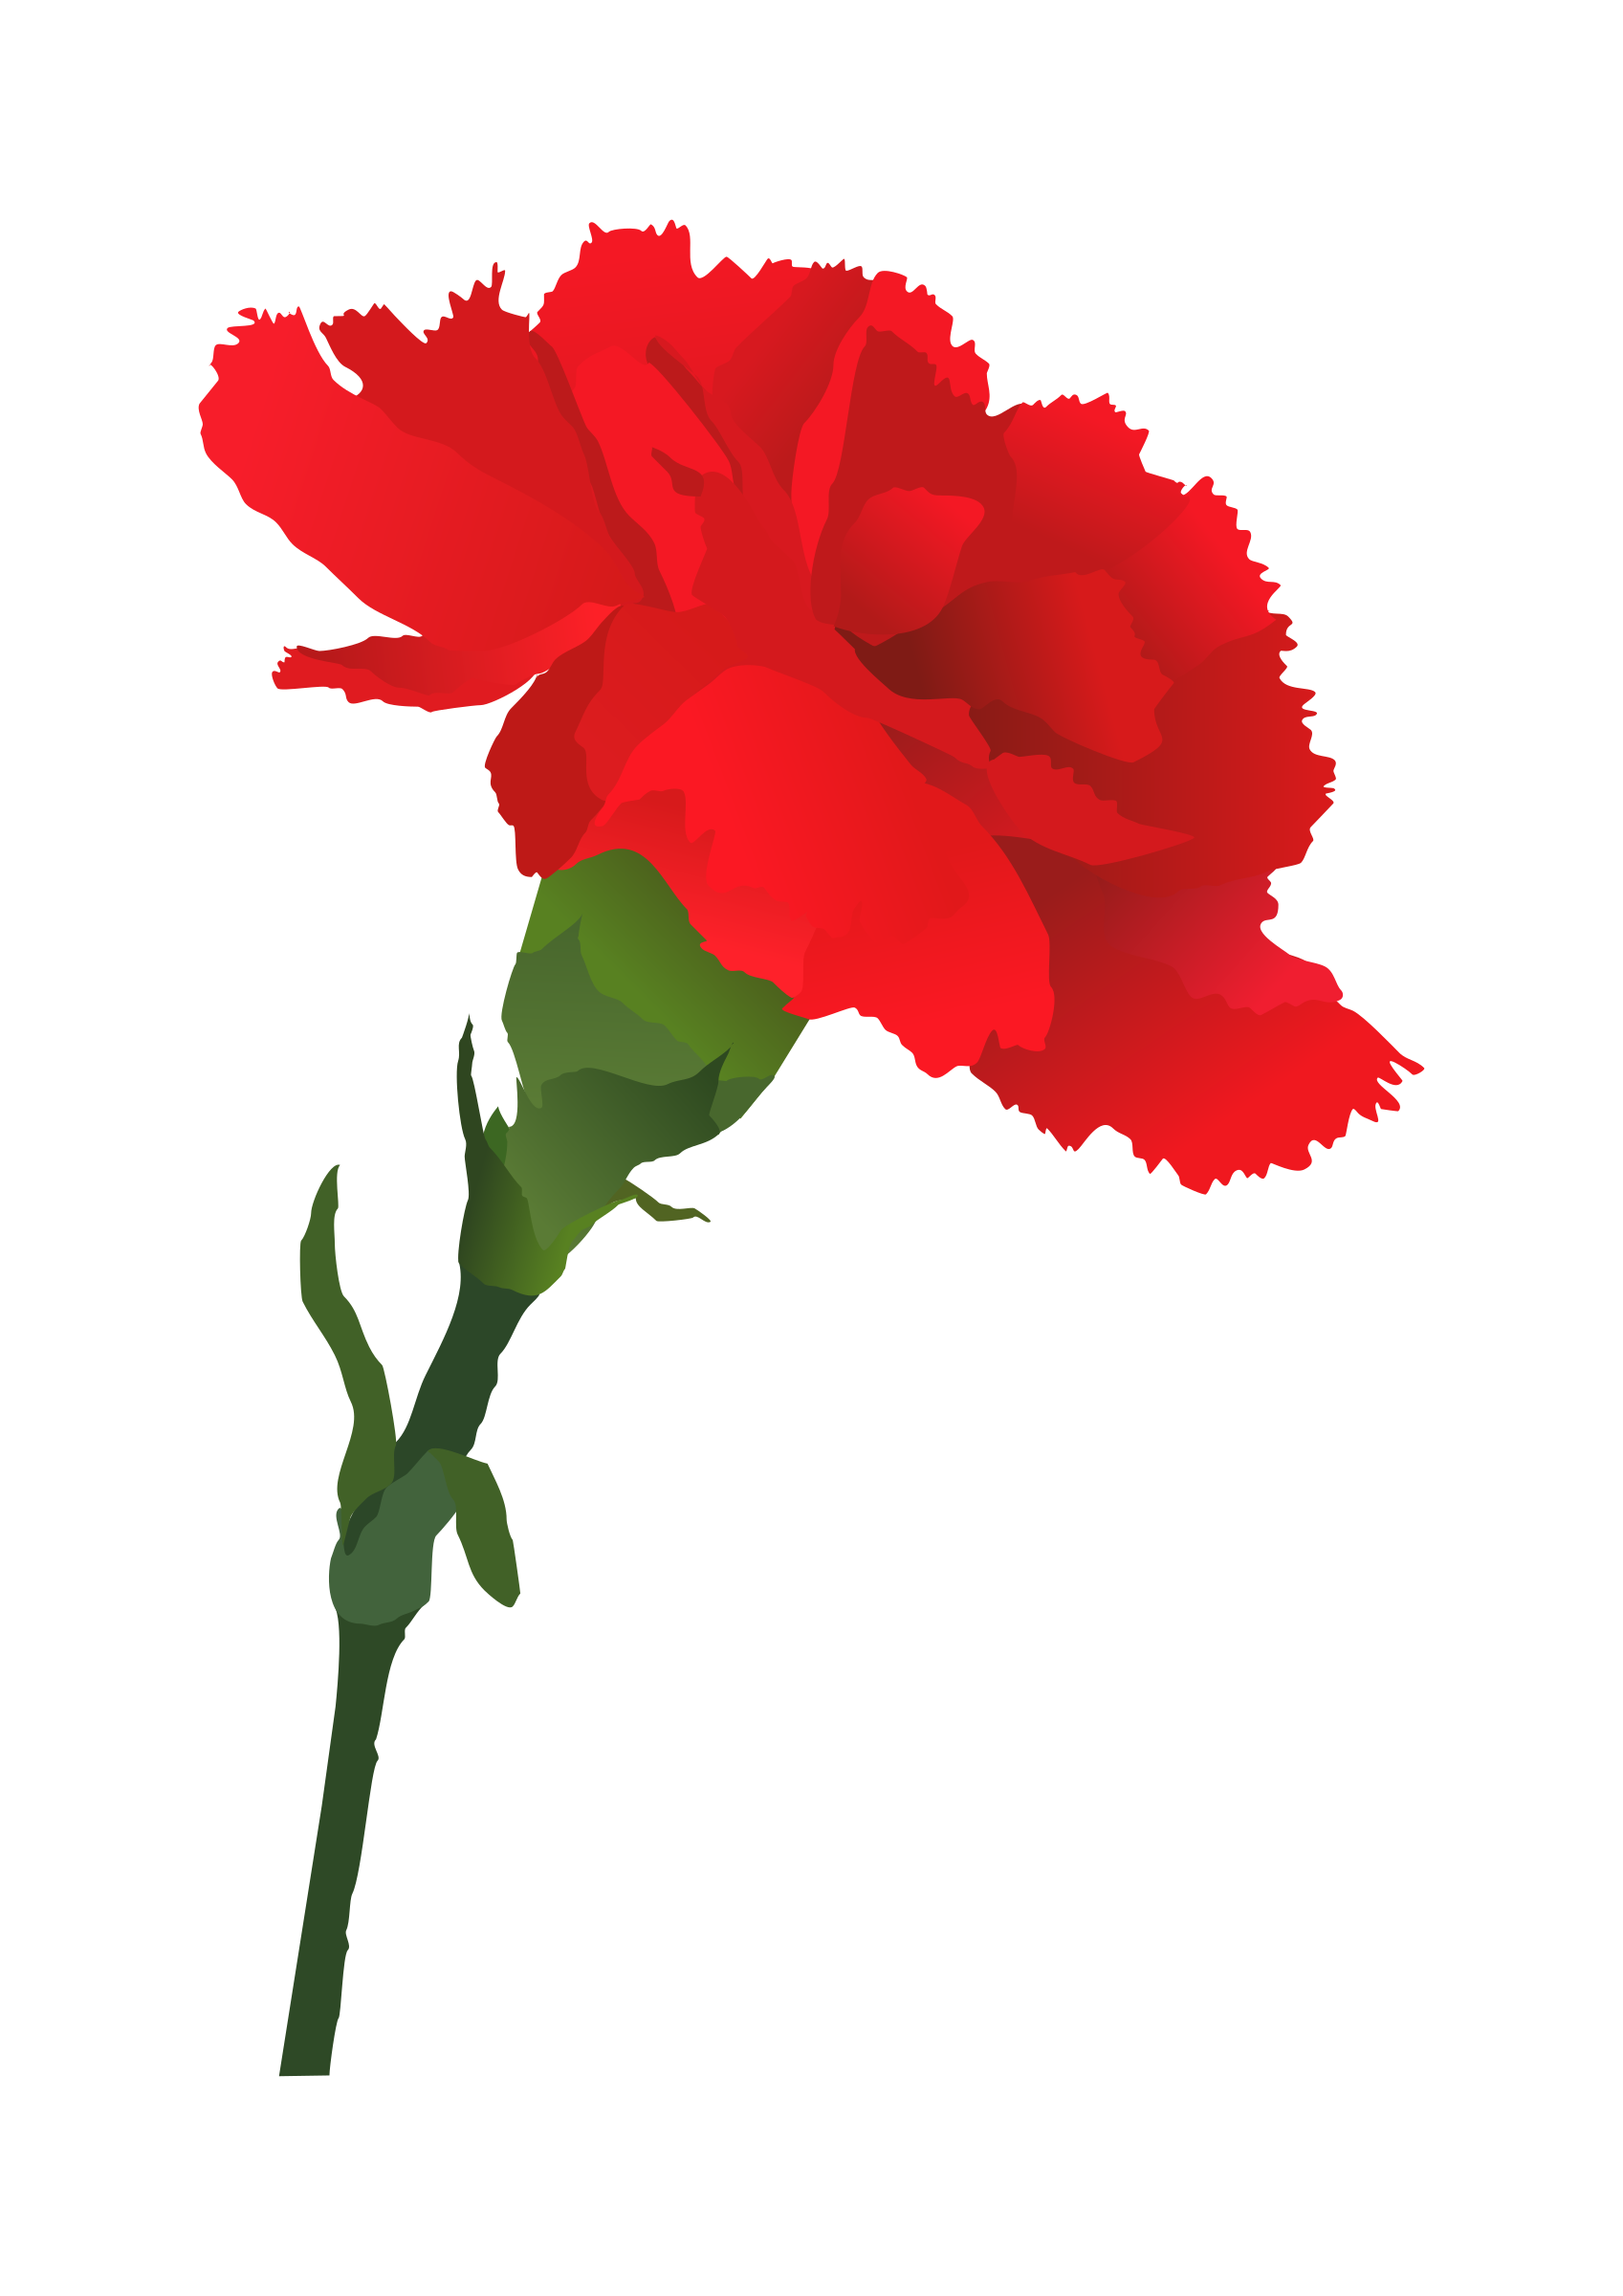 Carnation clipart #7